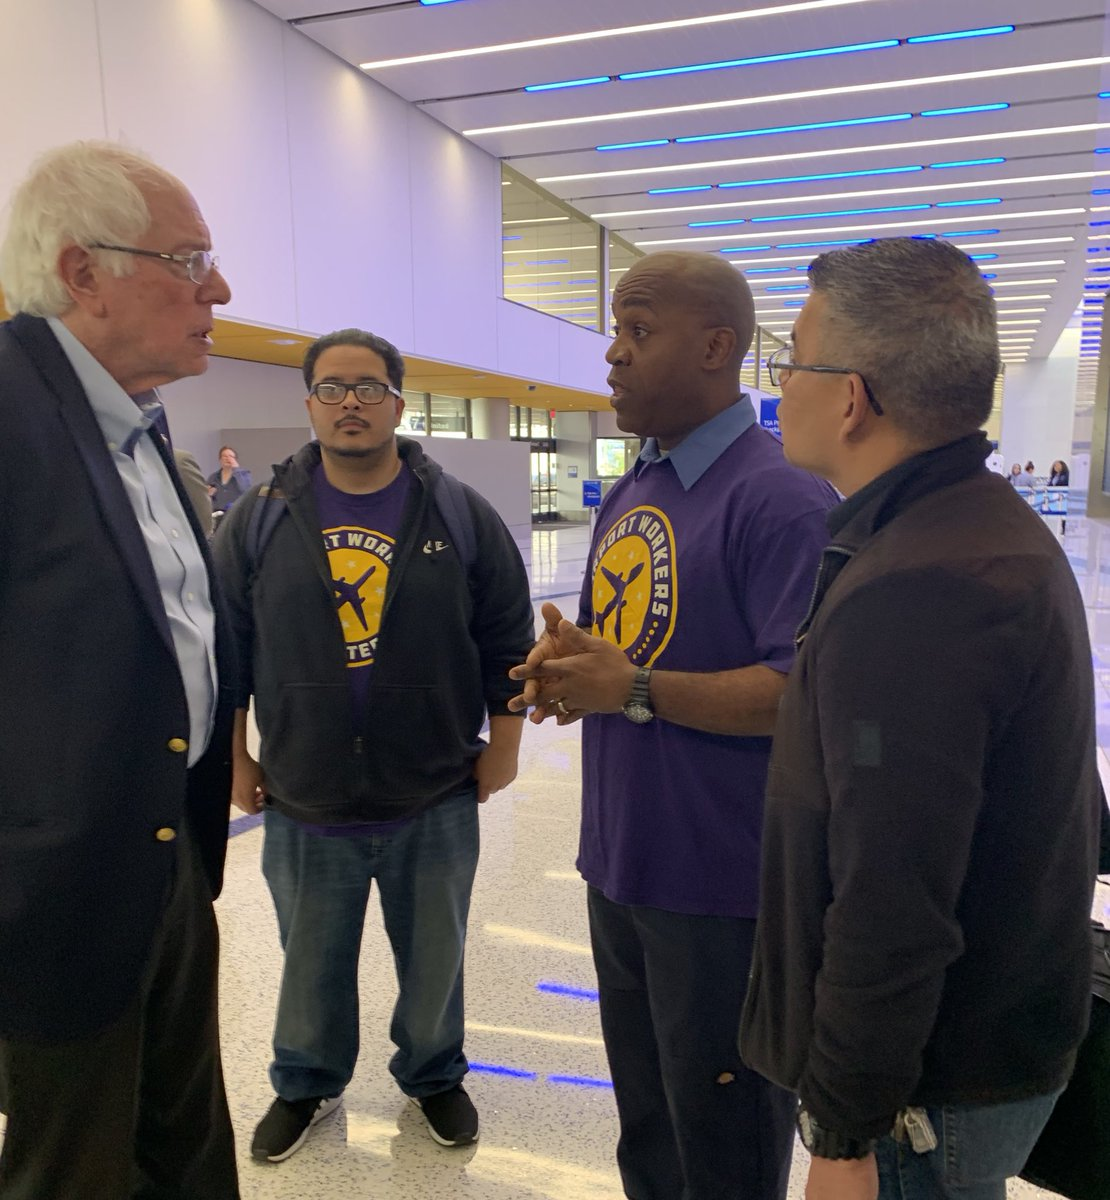 Airlines like Southwest and American are switching passenger service work at LAX away from union contractors. Not acceptable. If we're going to rebuild the middle class in America we must support the trade union movement. I stand with LAX workers.